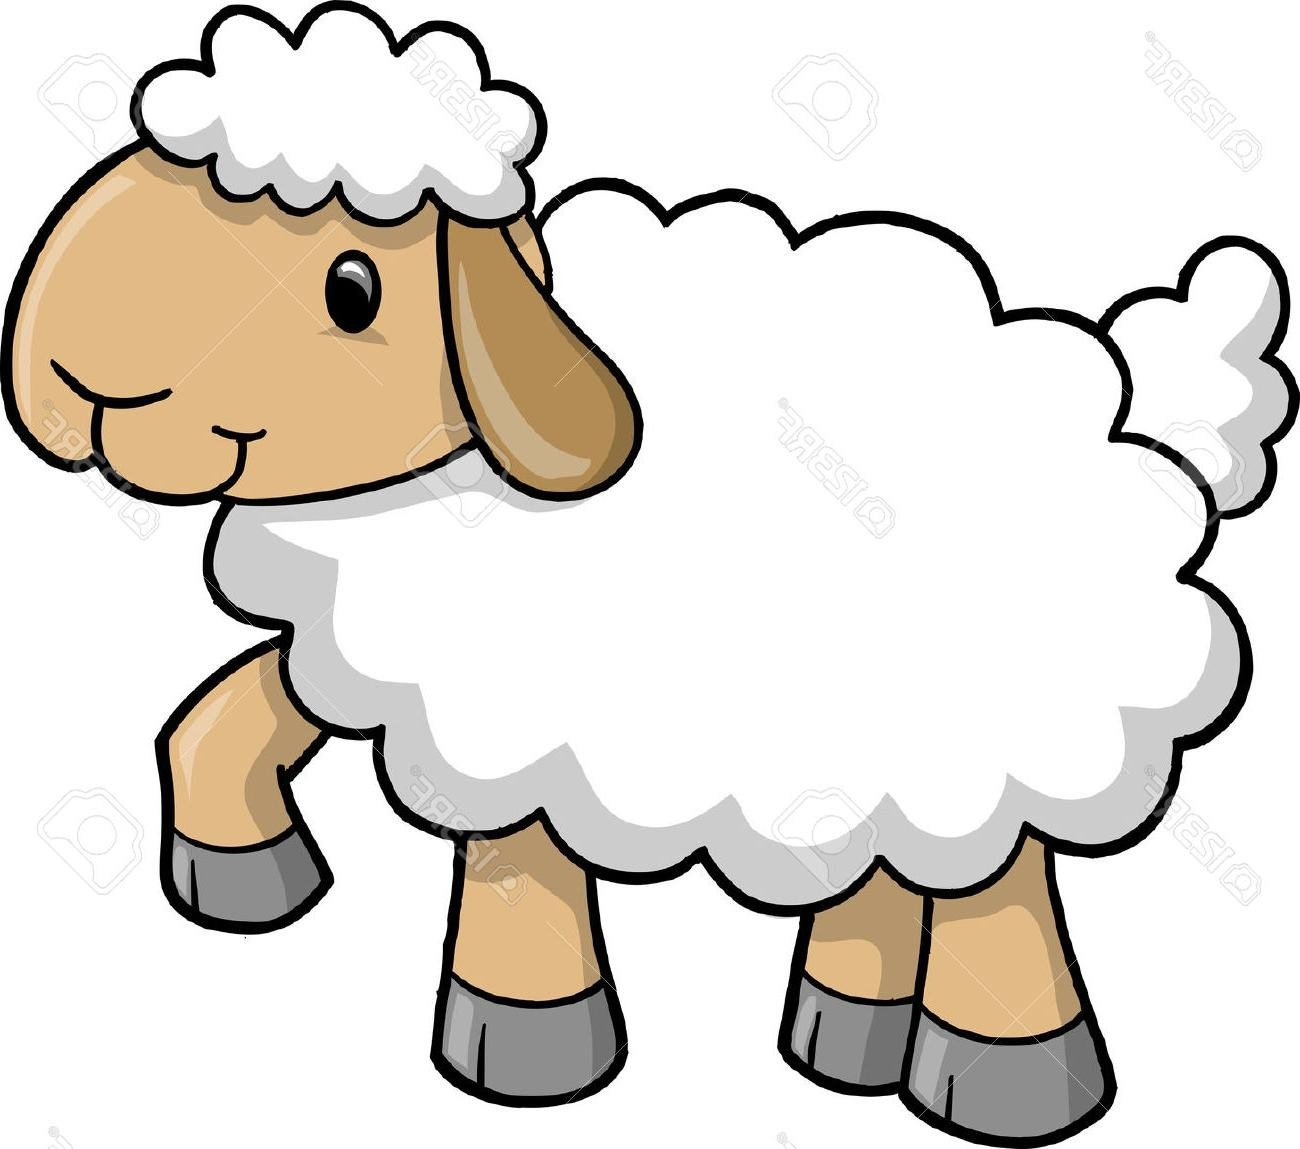 lion lamb clipart at getdrawings com free for personal use lion rh getdrawings com clip art lambgine clip art lamb girls